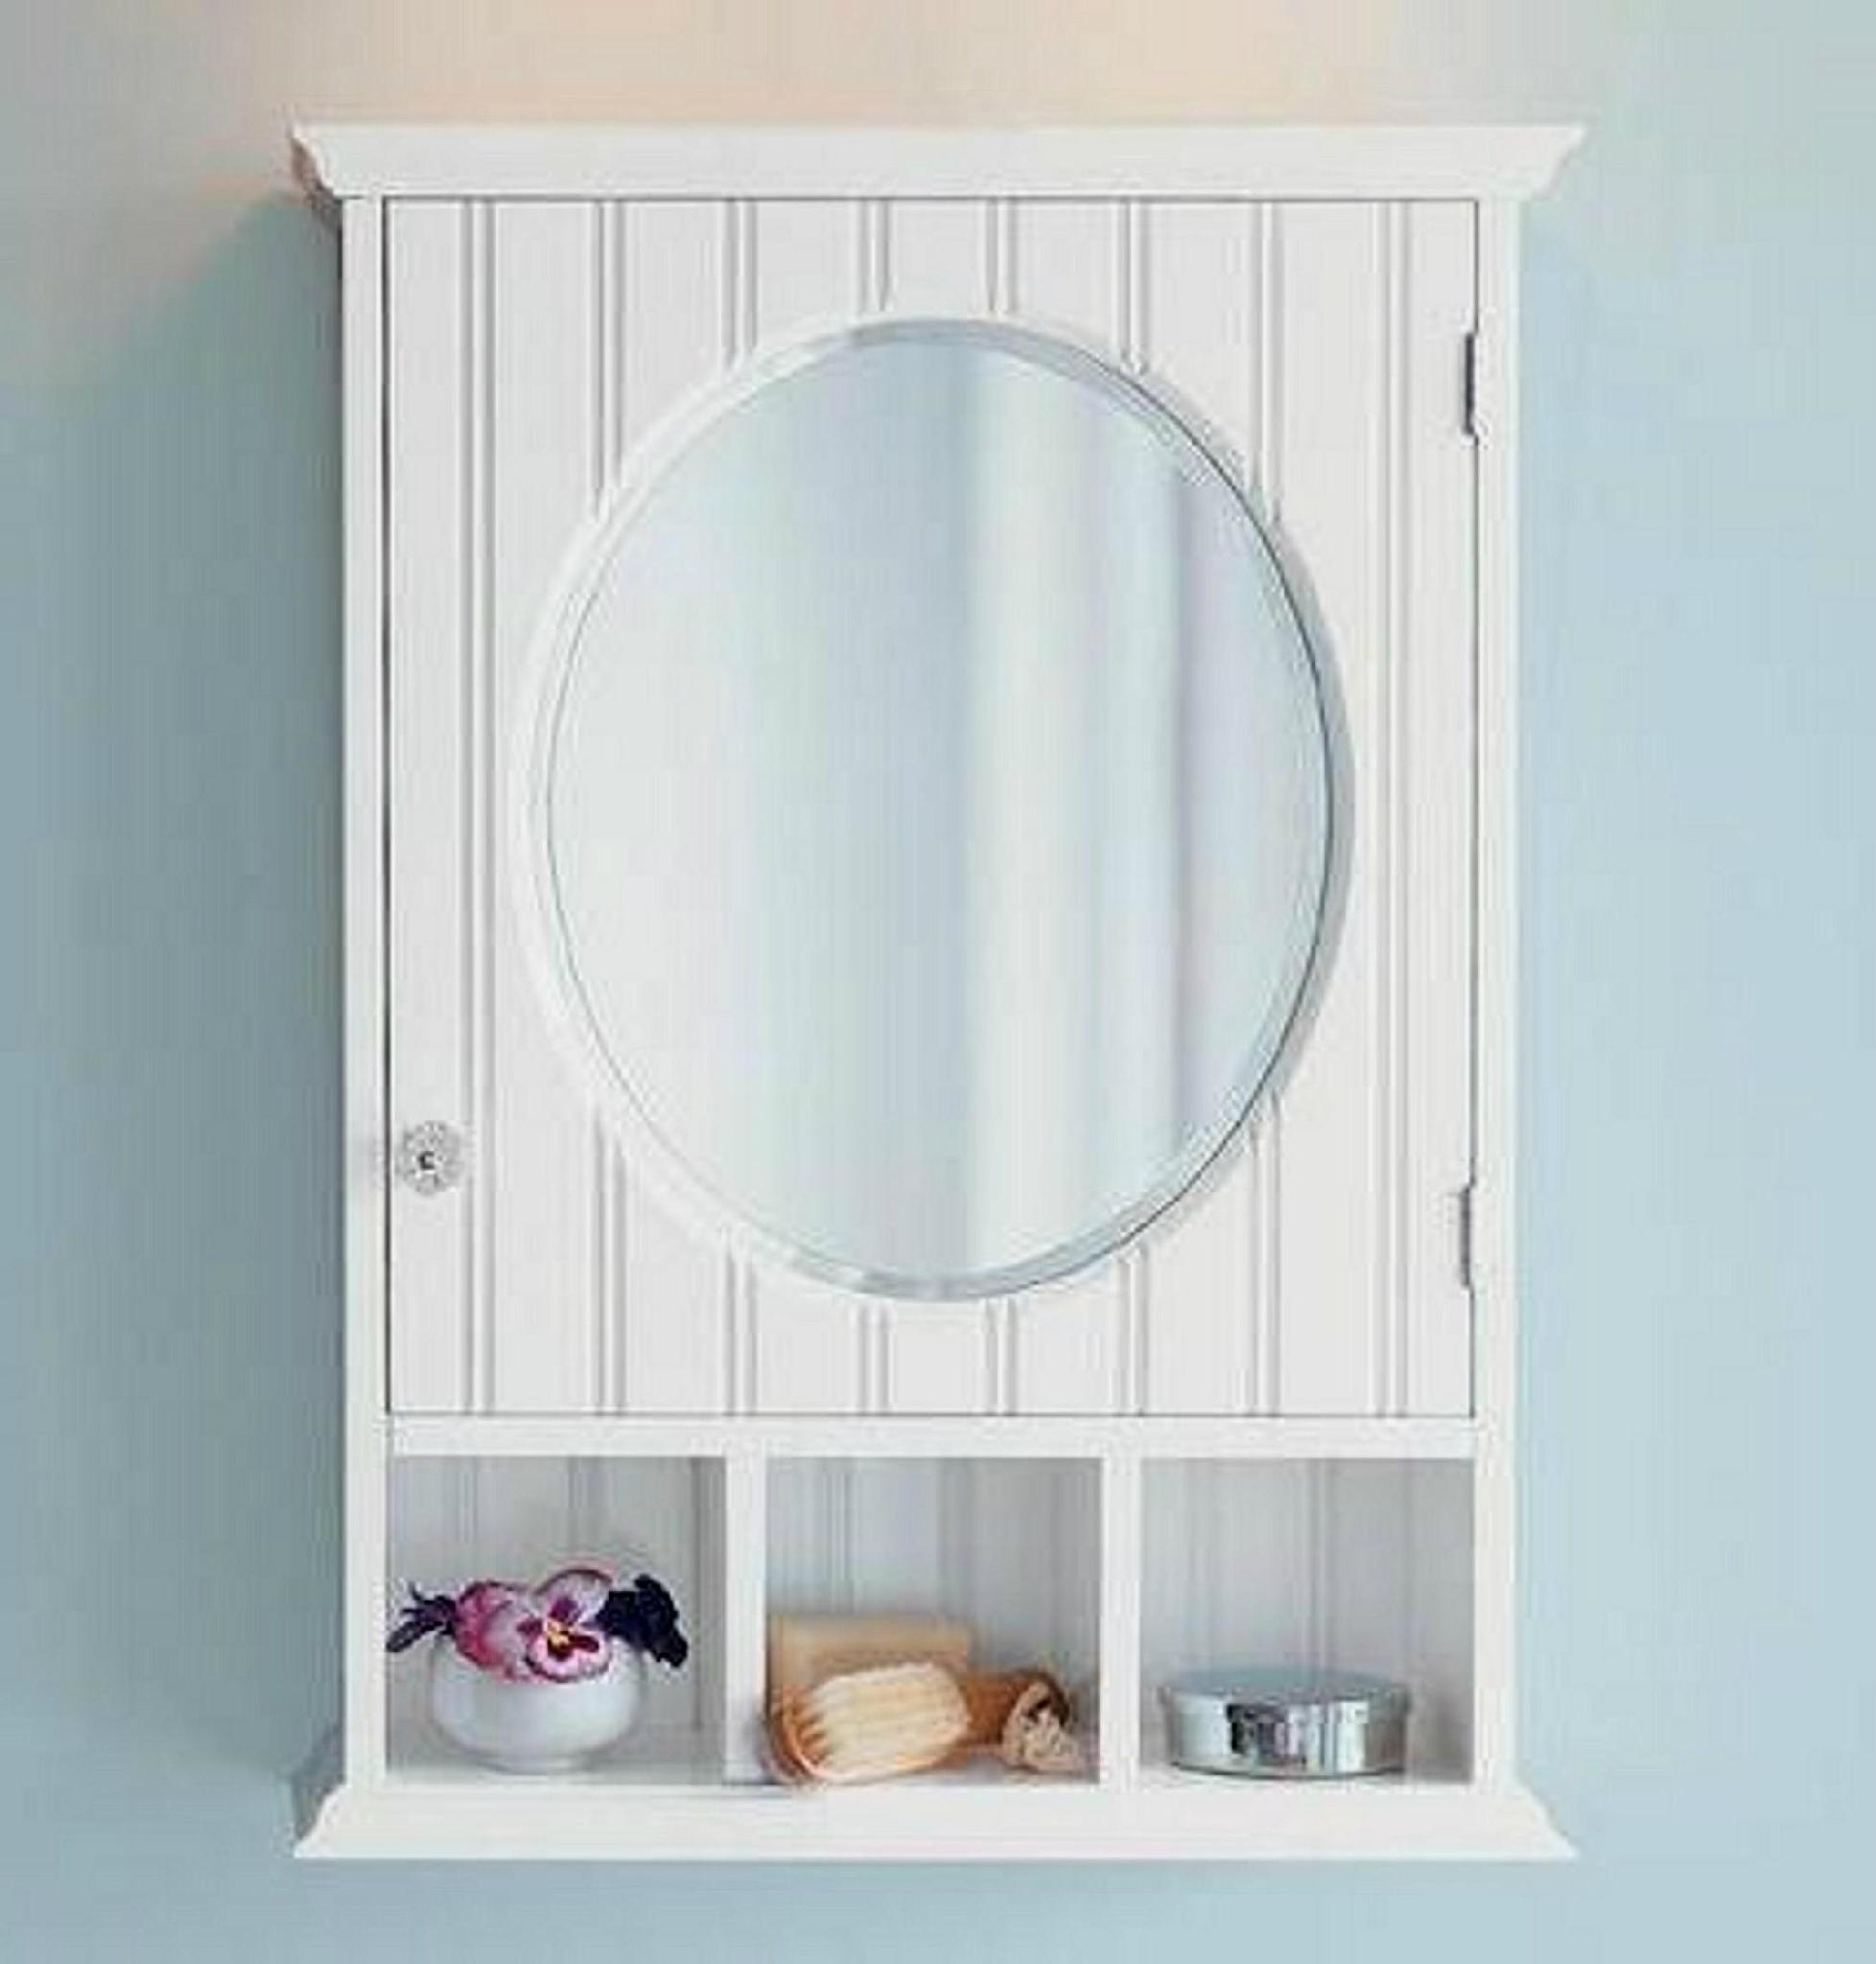 Pinstriped round mirrored bathroom medicine cabinets wd 1703 mighty taiwan manufacturer for Round mirror bathroom cabinet